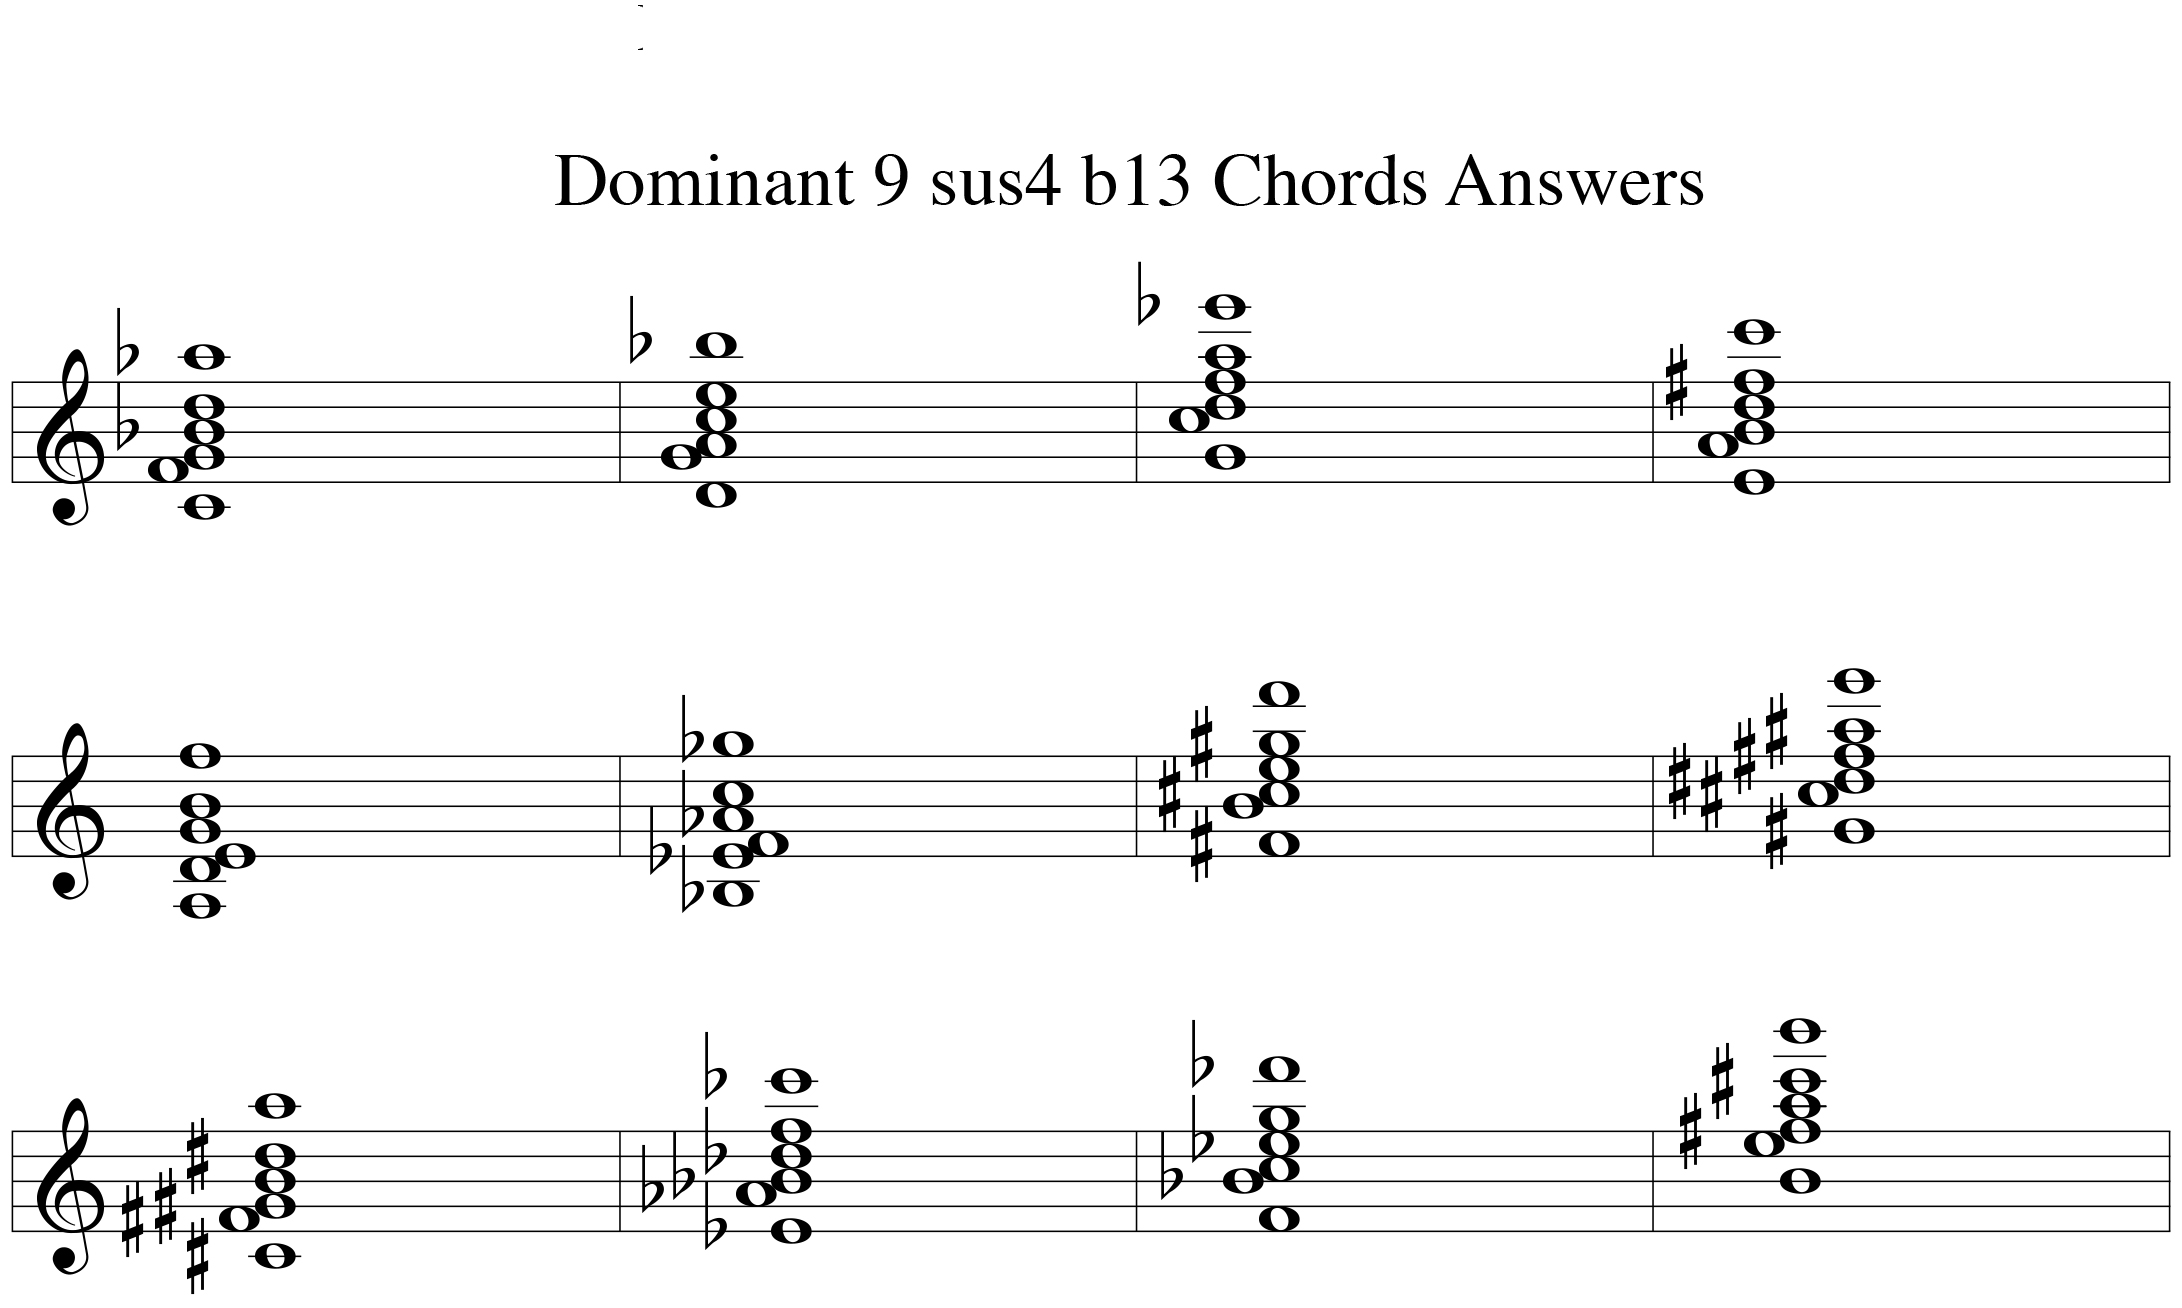 Music-Theory-Workbook-for-all-instruments-by-bruce-arnold-for-muse-eek.com-basic-interval-exercise-Crop-Answers9sus4b13